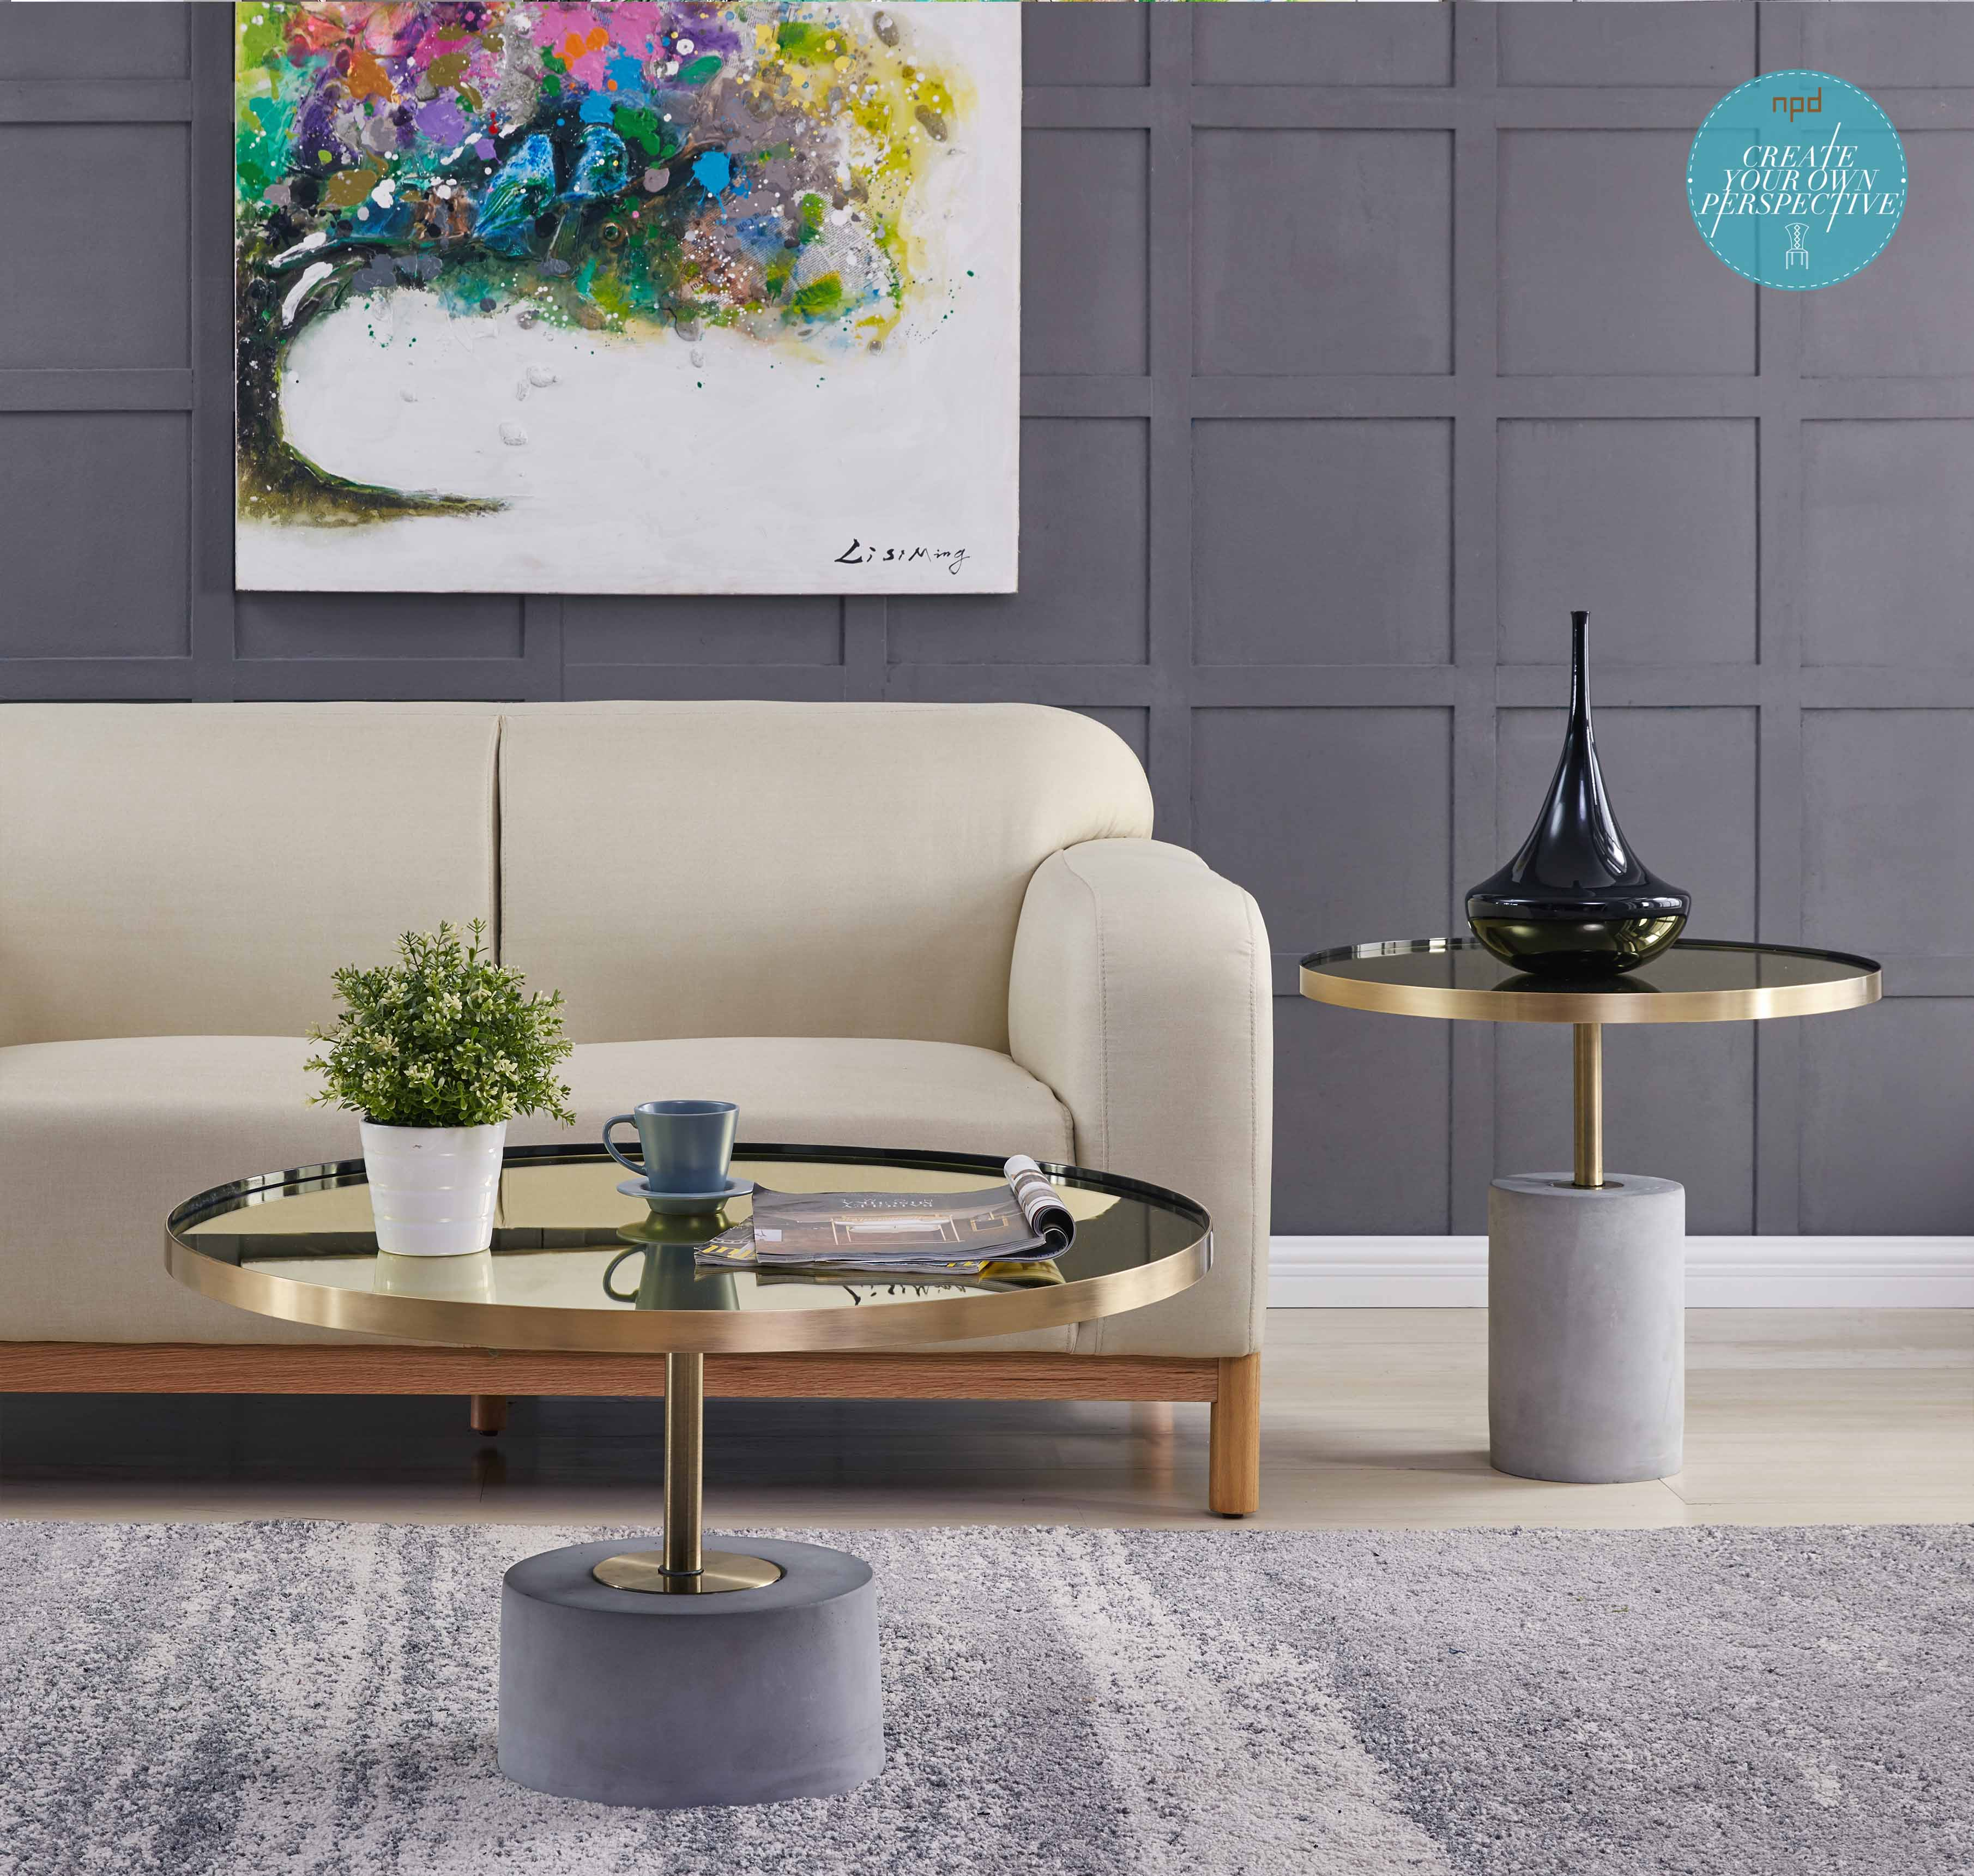 Winter Las Vegas Market Is Shaping Up For Another Exciting Year In Home Furnishings Styles Colors And S Based On The Latest First Look Outlook